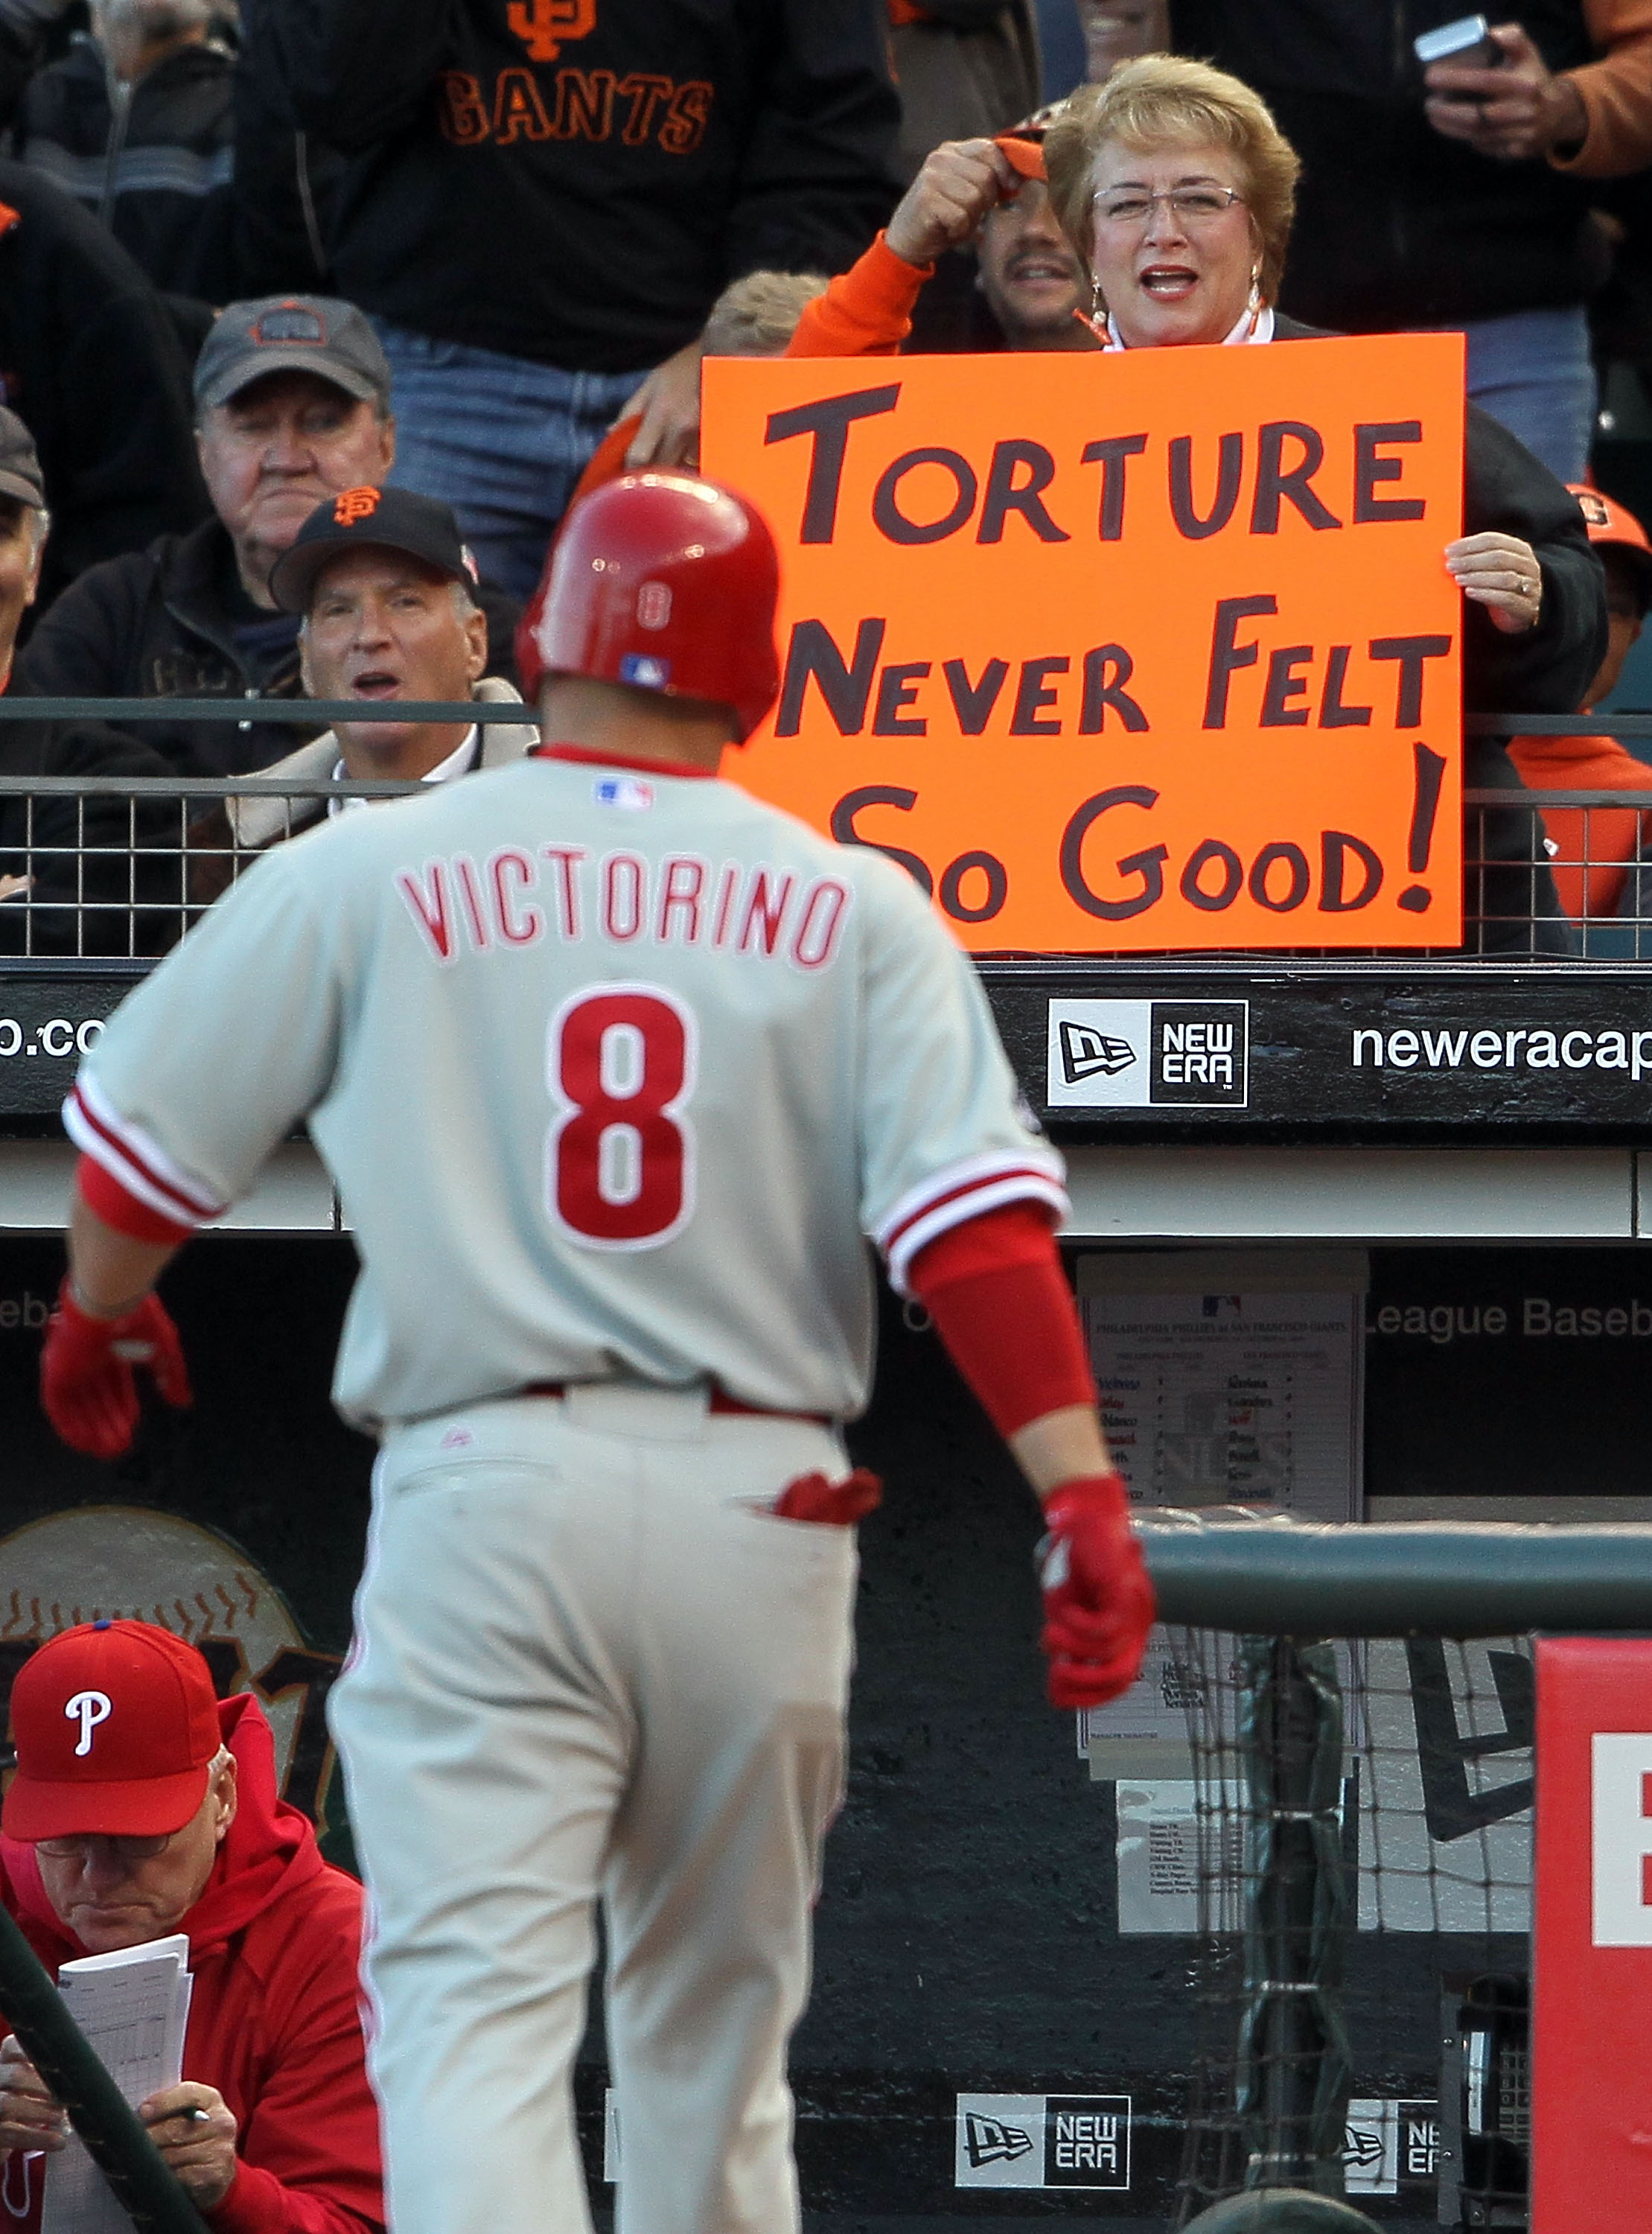 SAN FRANCISCO - OCTOBER 20:  A fan holds a sign as Shane Victorino #8 of the Philadelphia Phillies walks in to the dugout after striking out in the first inning against the San Francisco Giants in Game Four of the NLCS during the 2010 MLB Playoffs at AT&T